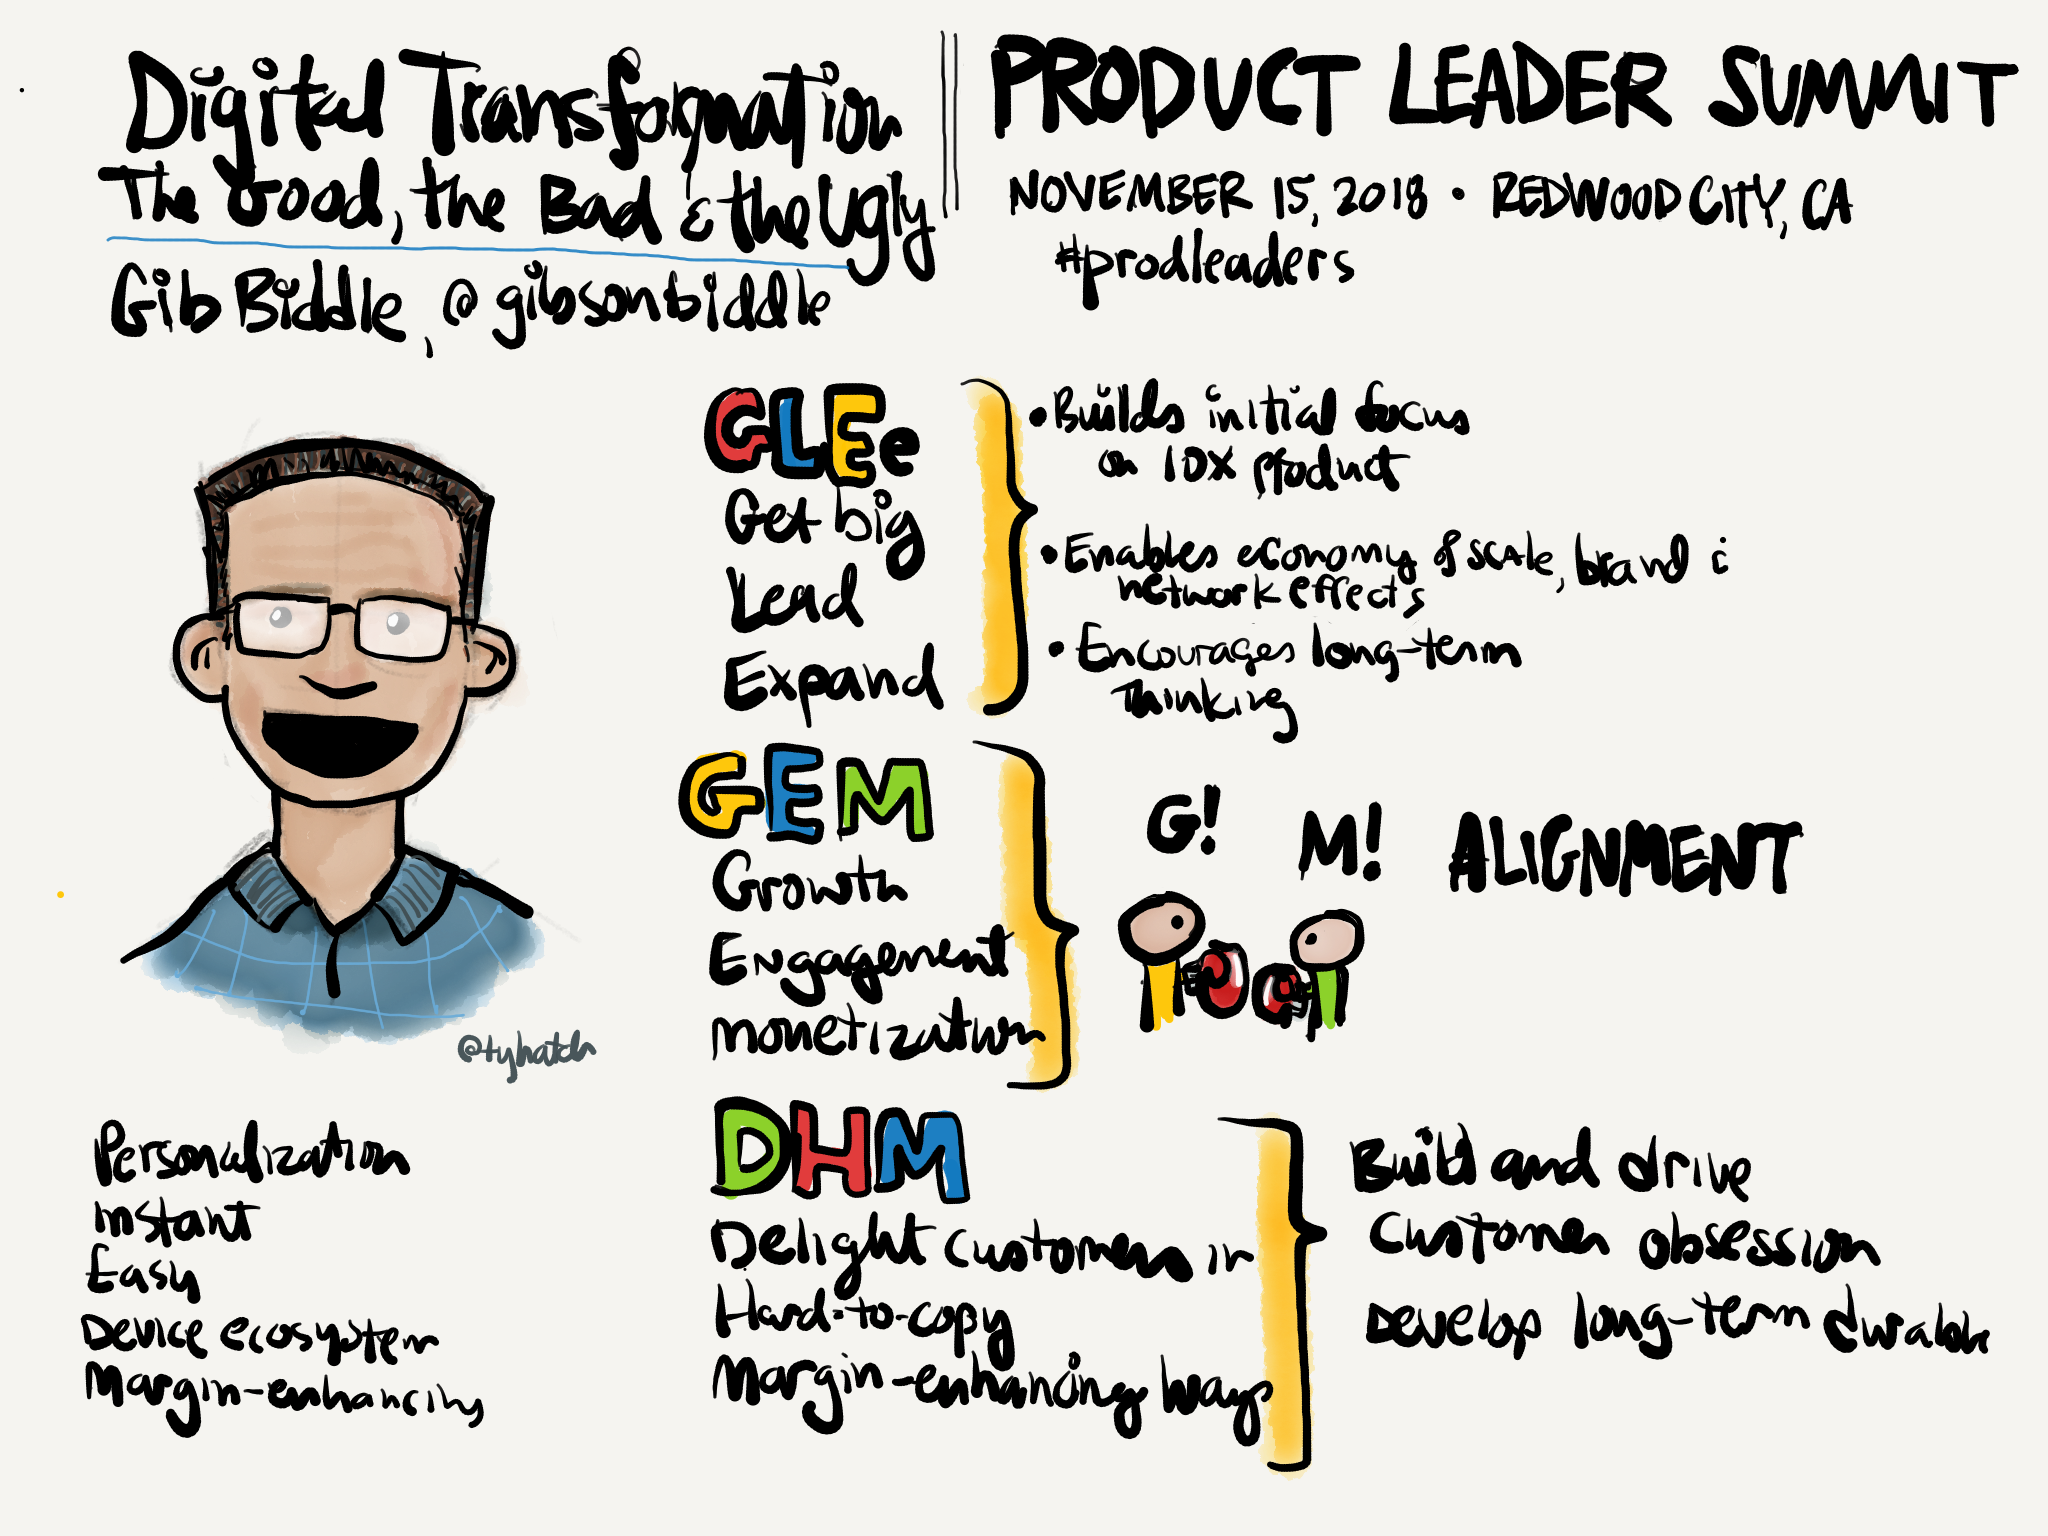 Gib Biddle talk: Digital Transformation: The Good, The Bad, and the Ugly